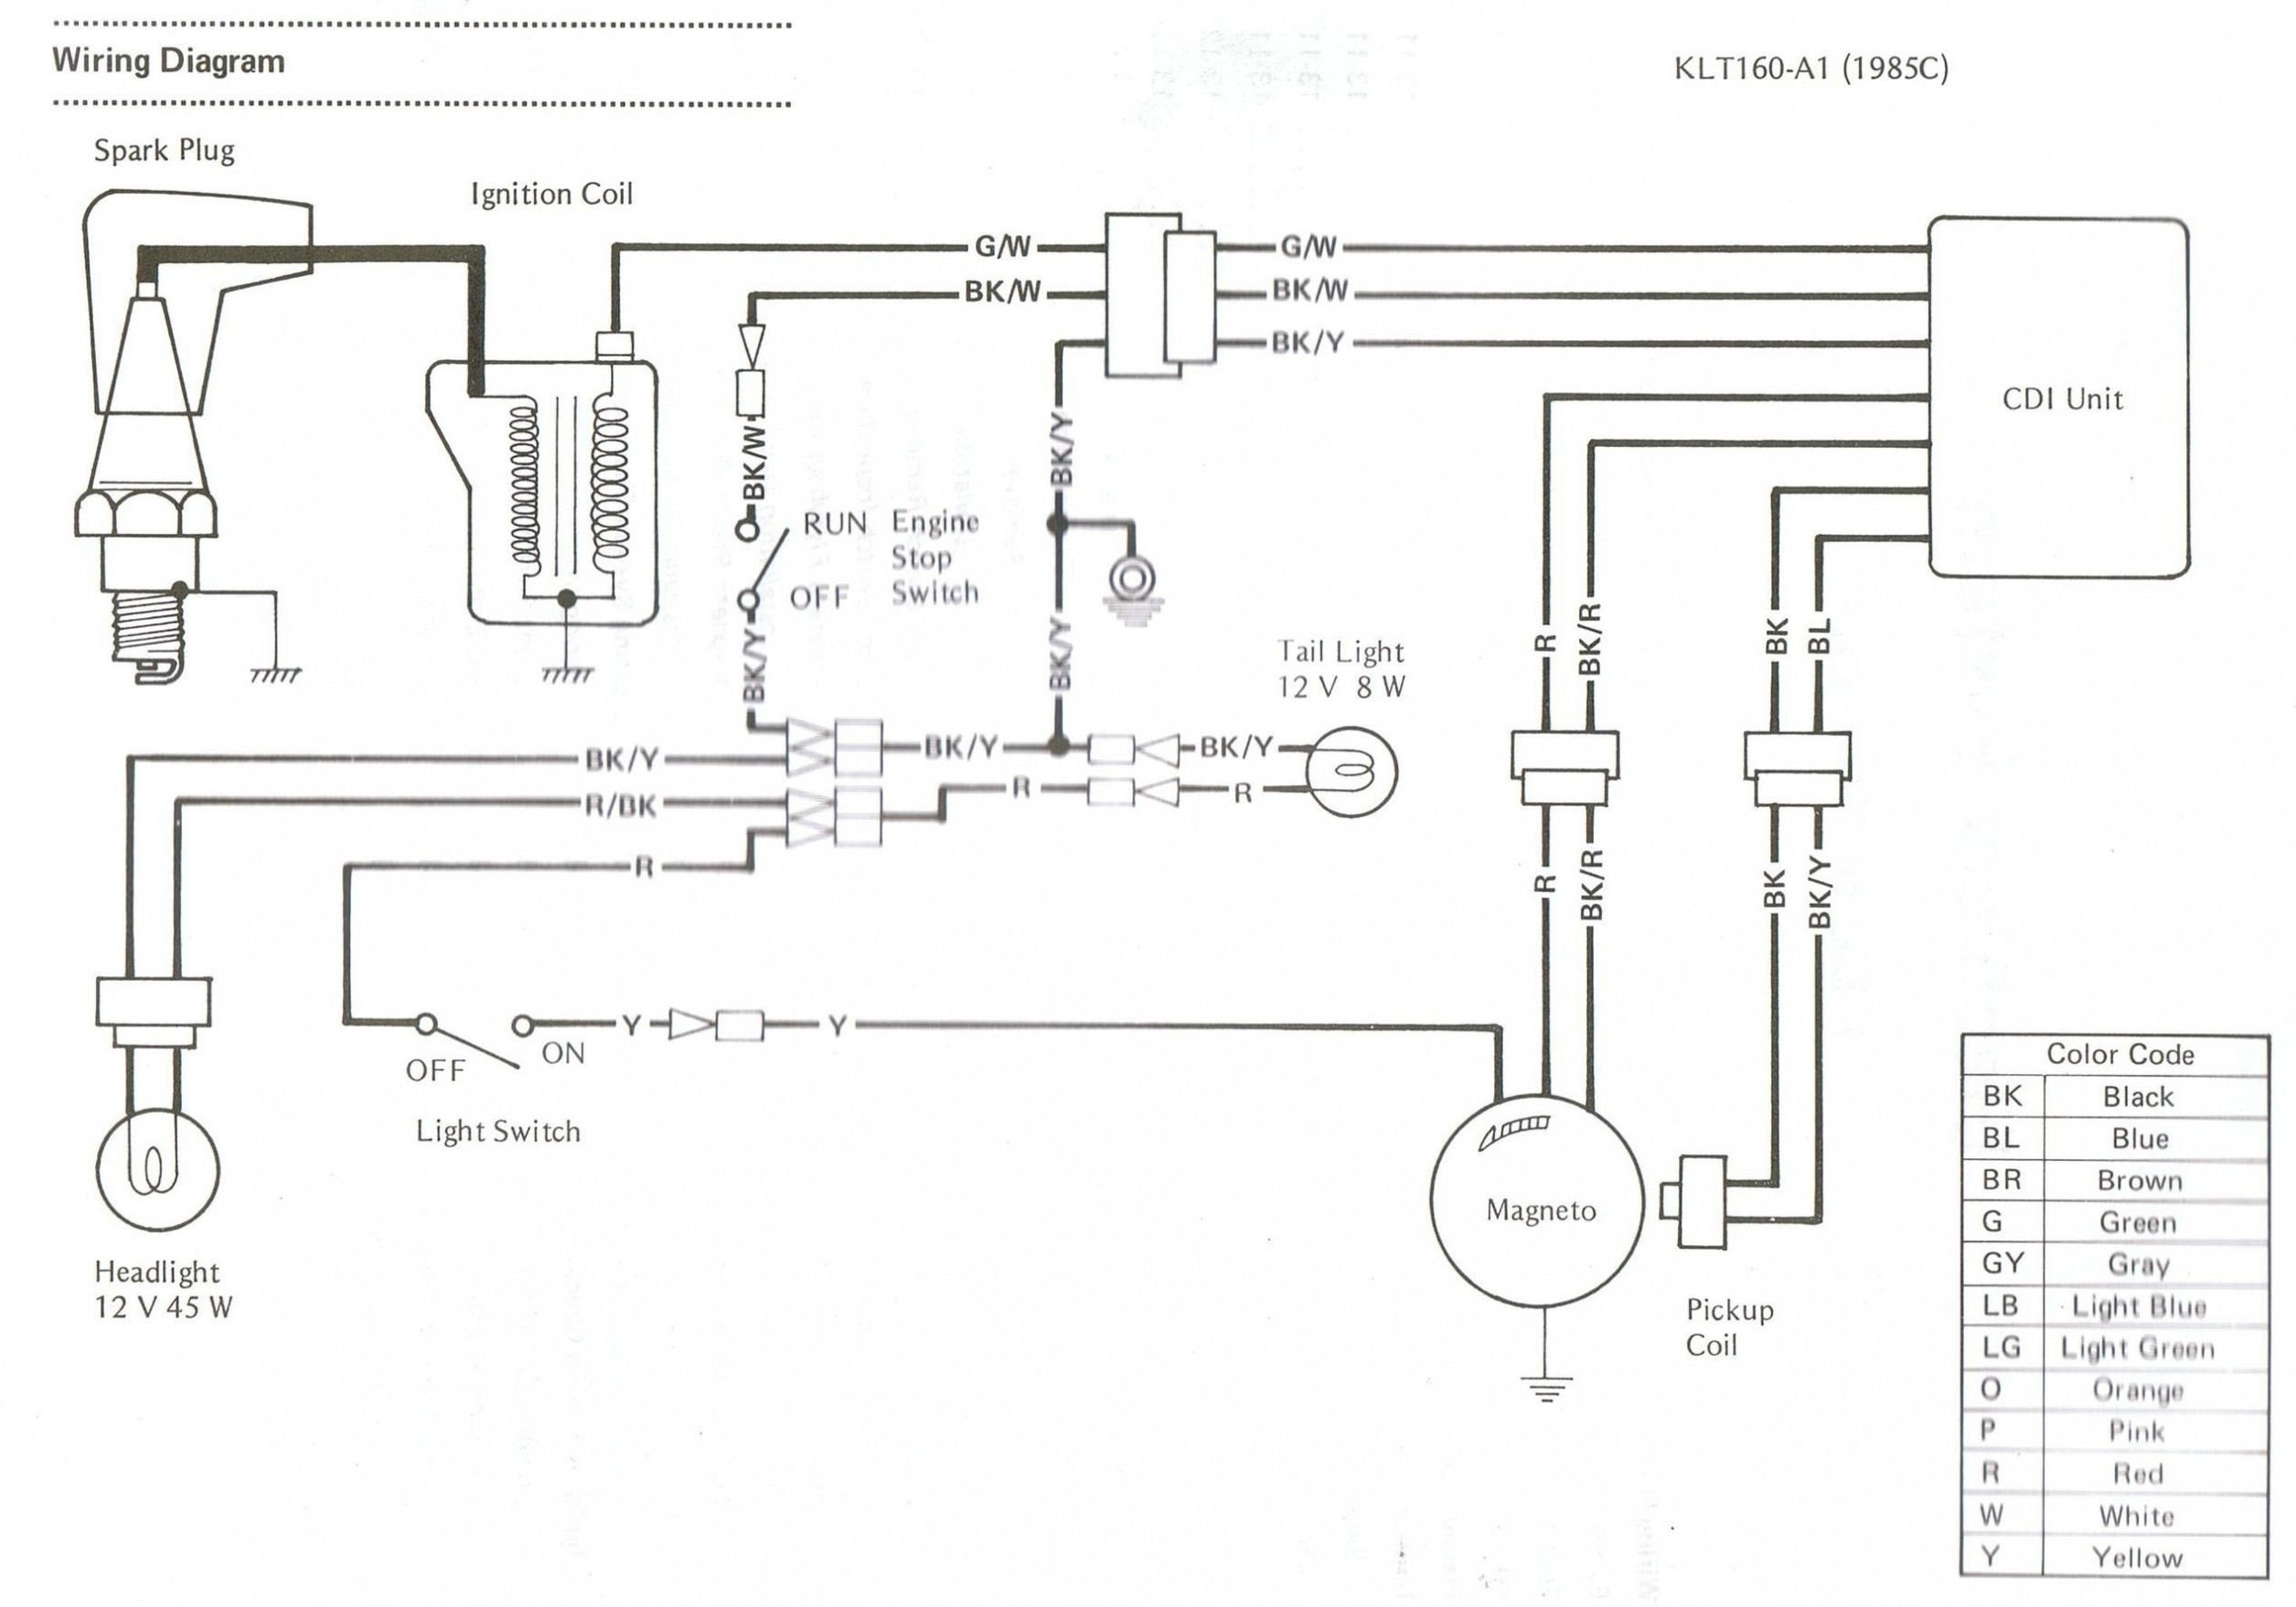 1994 Kawasaki 220 Wire Diagram Wiring Schematic - Wiring Diagram Recent  self-grand - self-grand.cosavedereanapoli.it | Bayou Wiring Schematic |  | self-grand.cosavedereanapoli.it